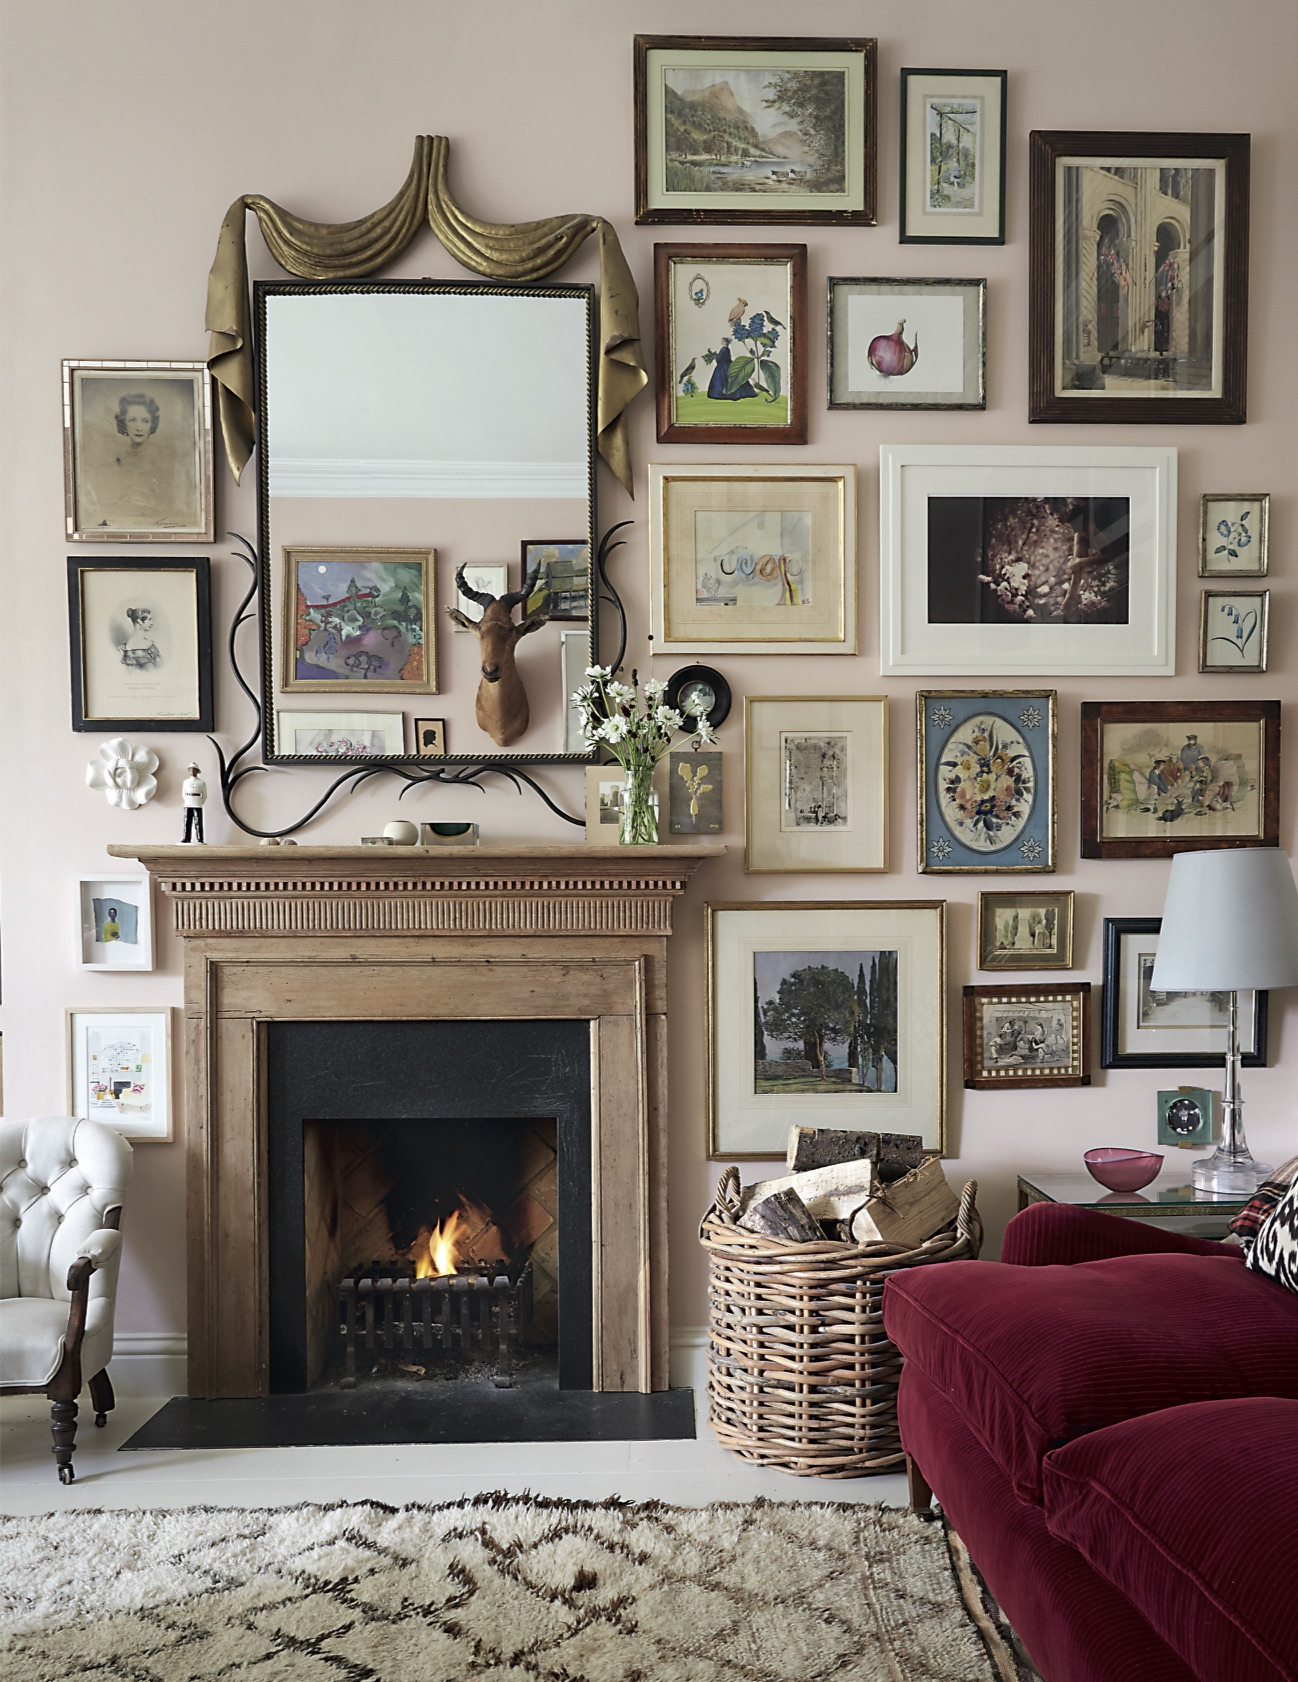 House garden march 2016 rita konig - Small living rooms with fireplaces ...